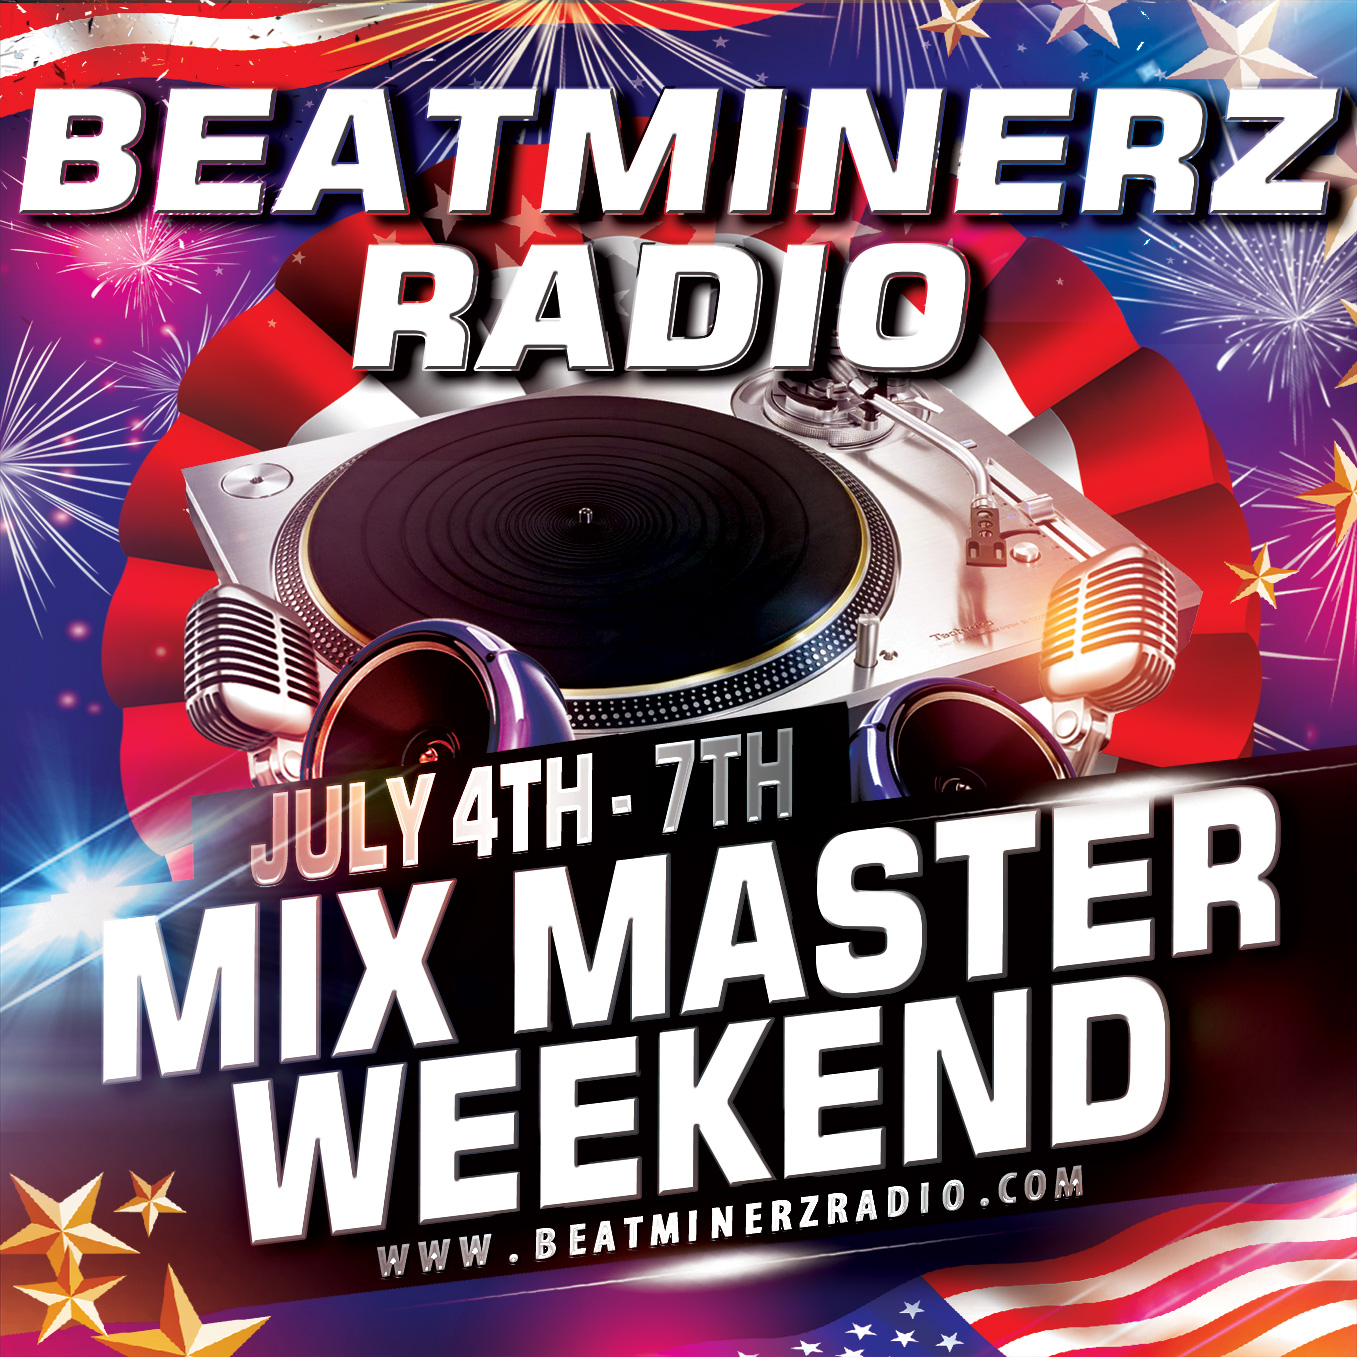 Beatminerz Radio July 4th 2019 Mixmaster Weekend